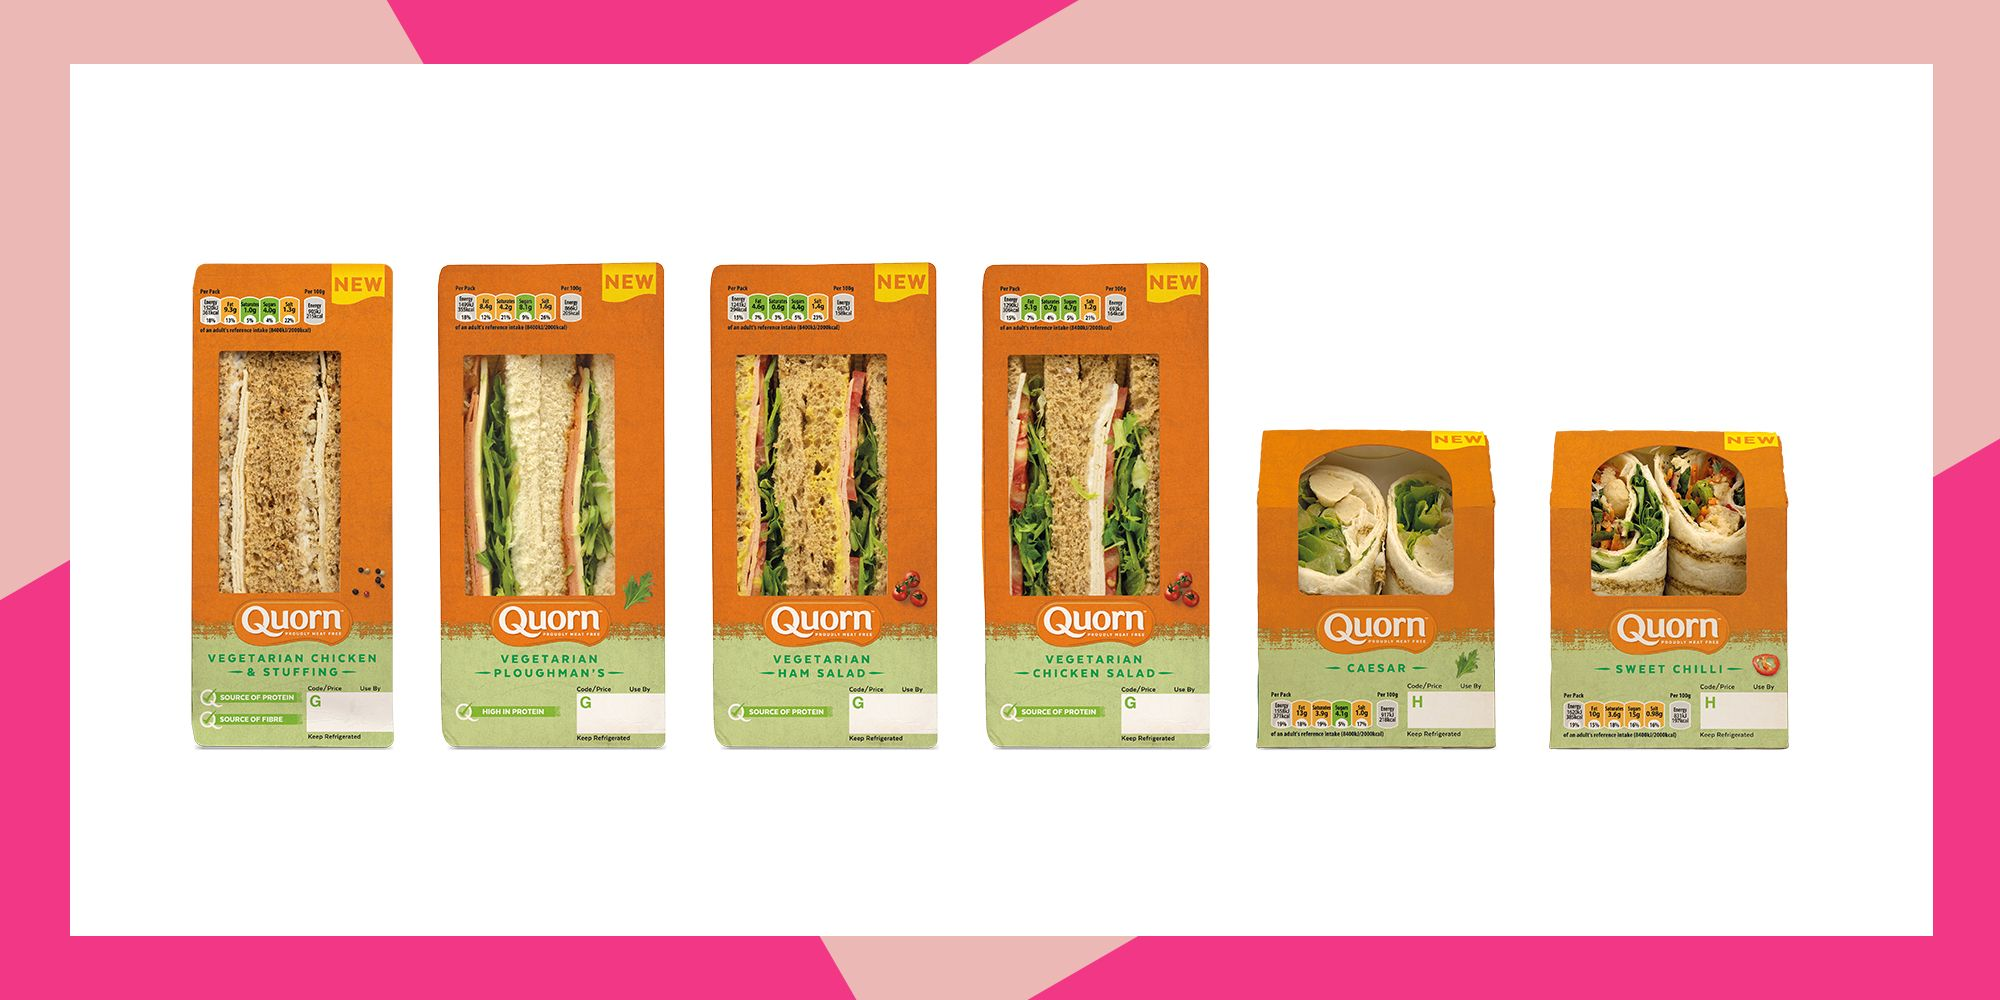 Quorn launches new lunch range and we can't wait to get our hands on it